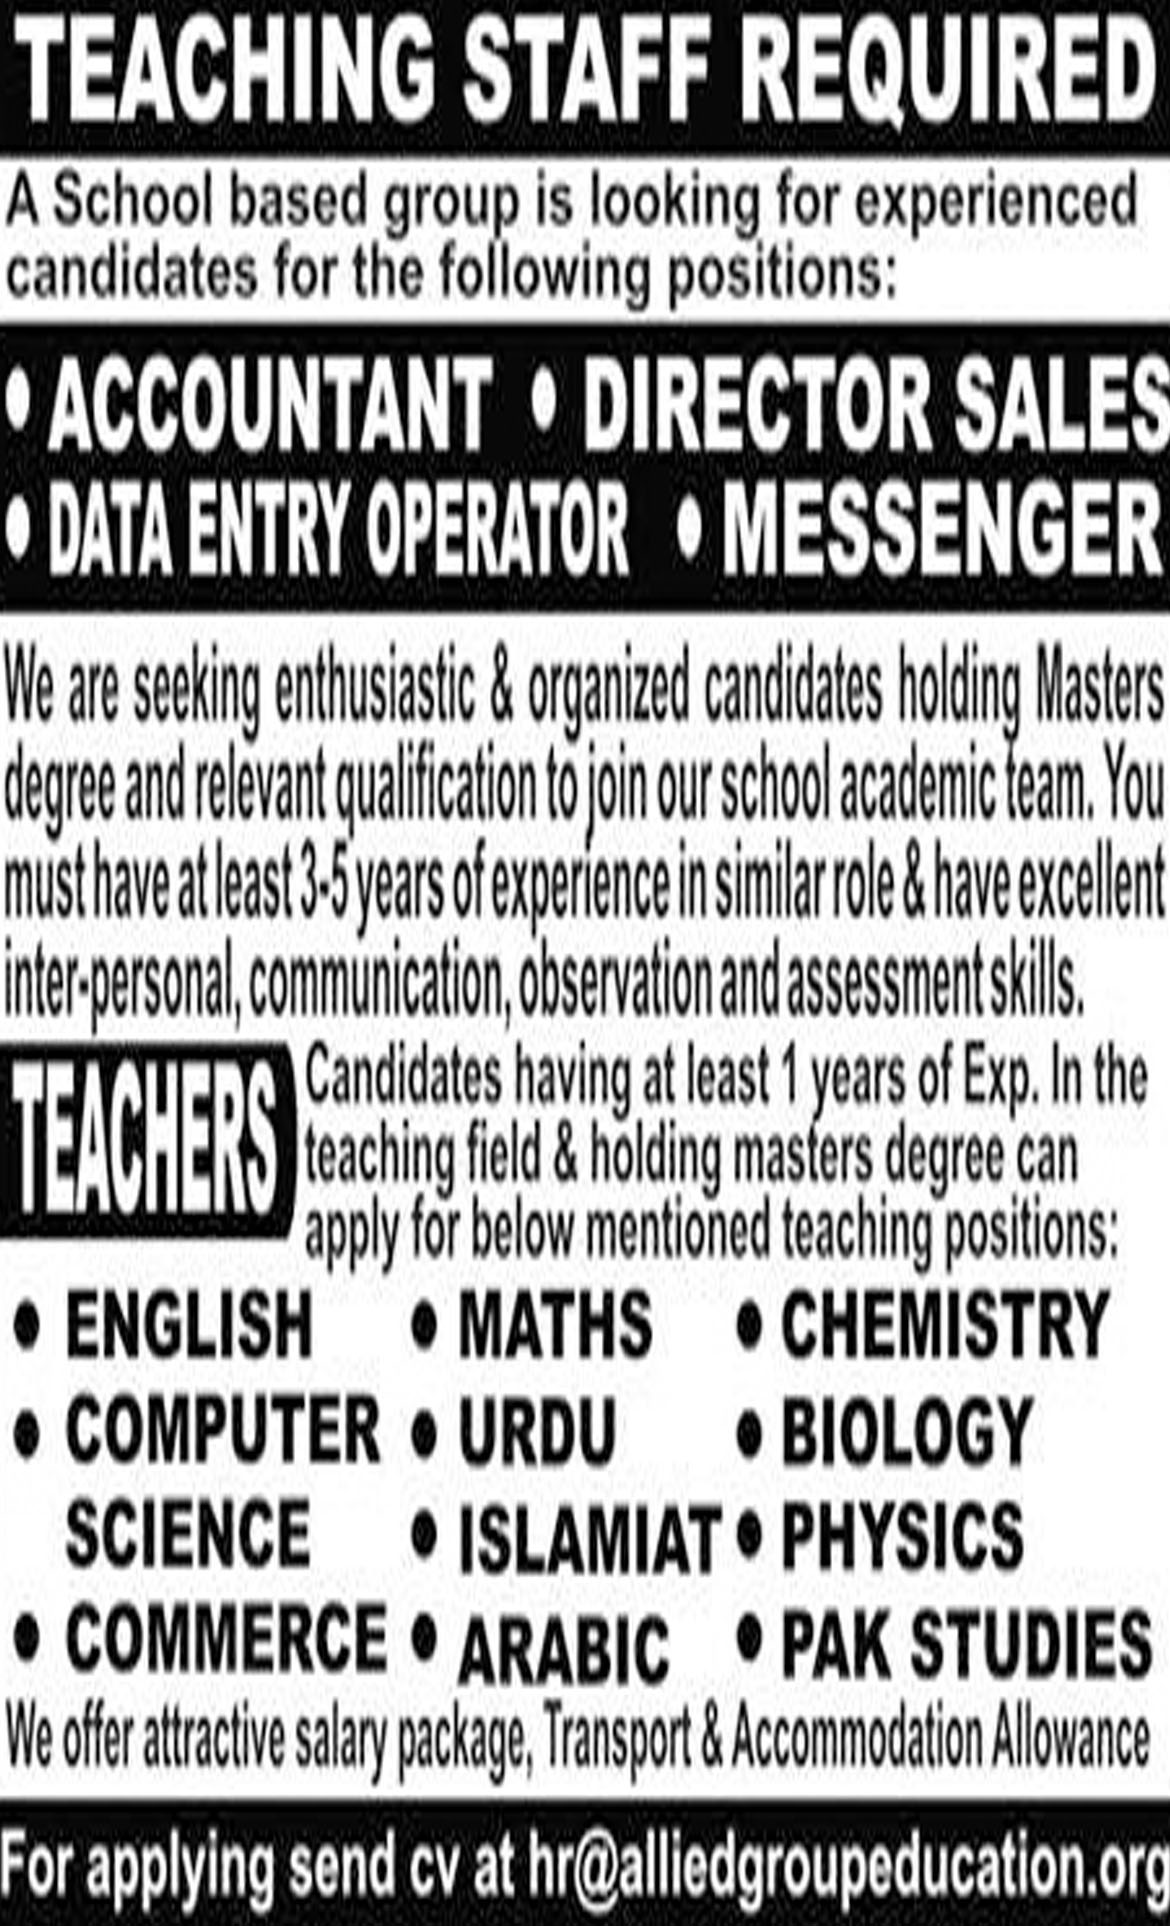 Jobs In Accountant, Data Entry Operator, Director, Teachers Required 07 Nov 2018